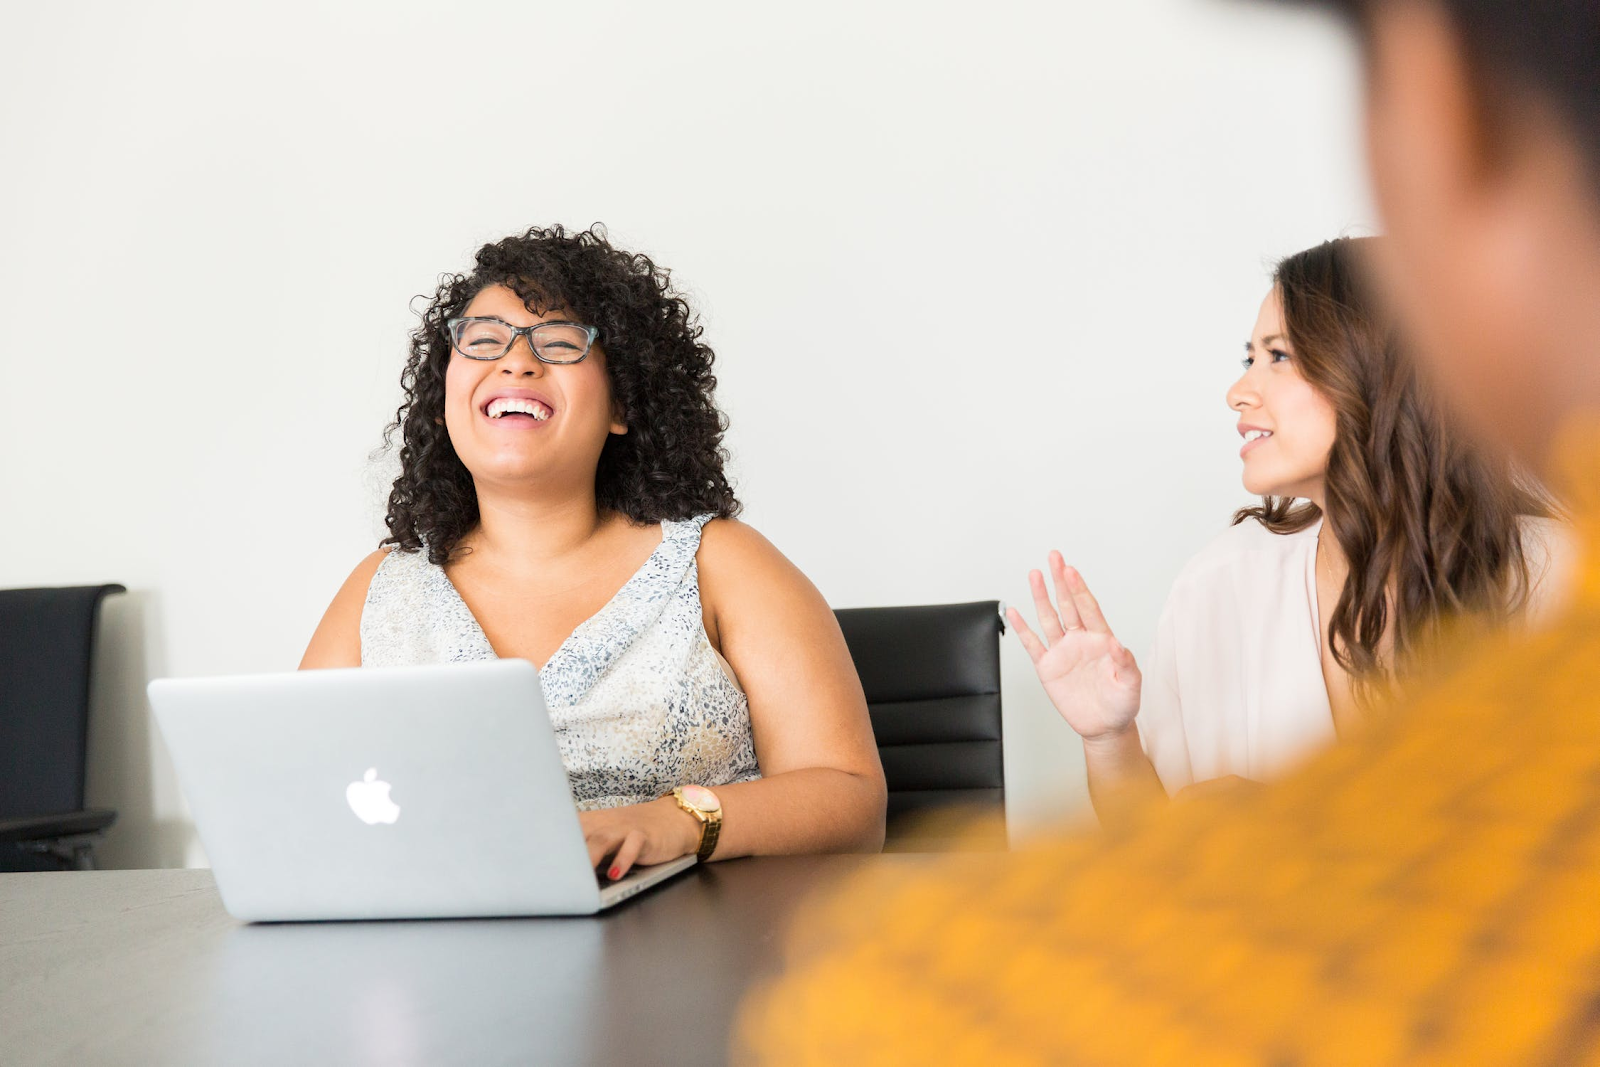 a woman on a laptop laughing at a coworker's joke